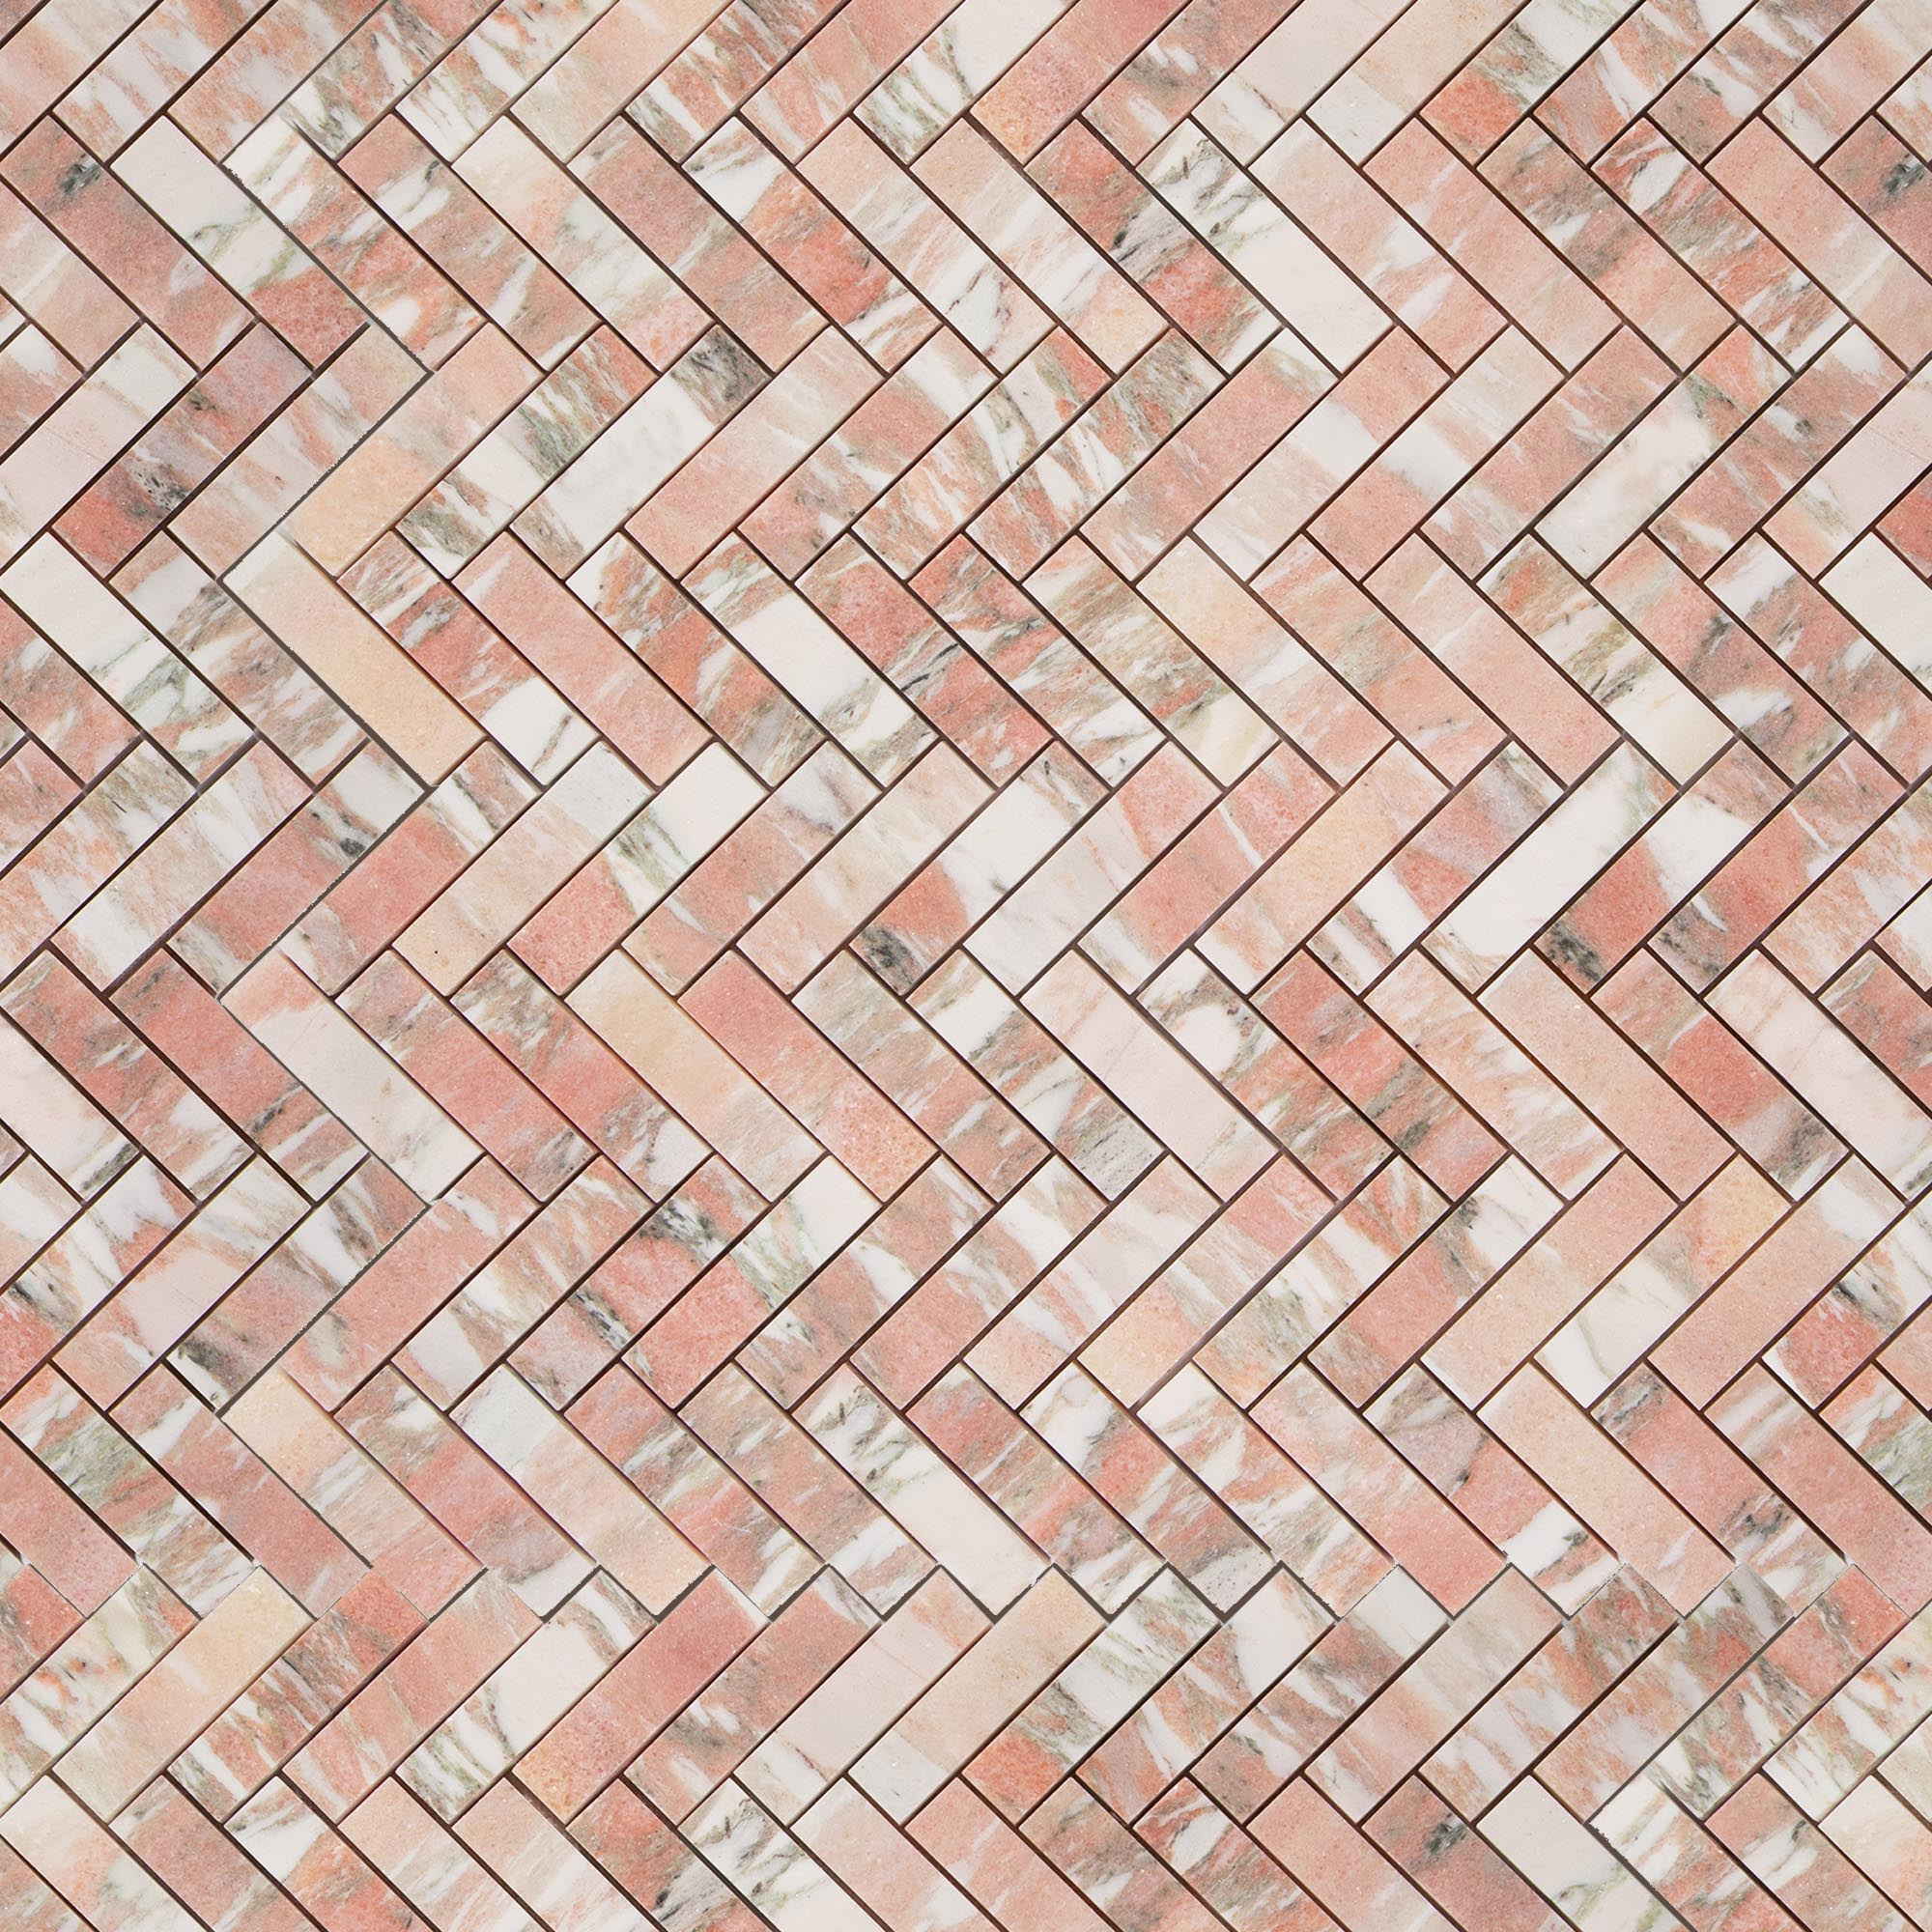 Norwegian Rose Marble - Honed - 1